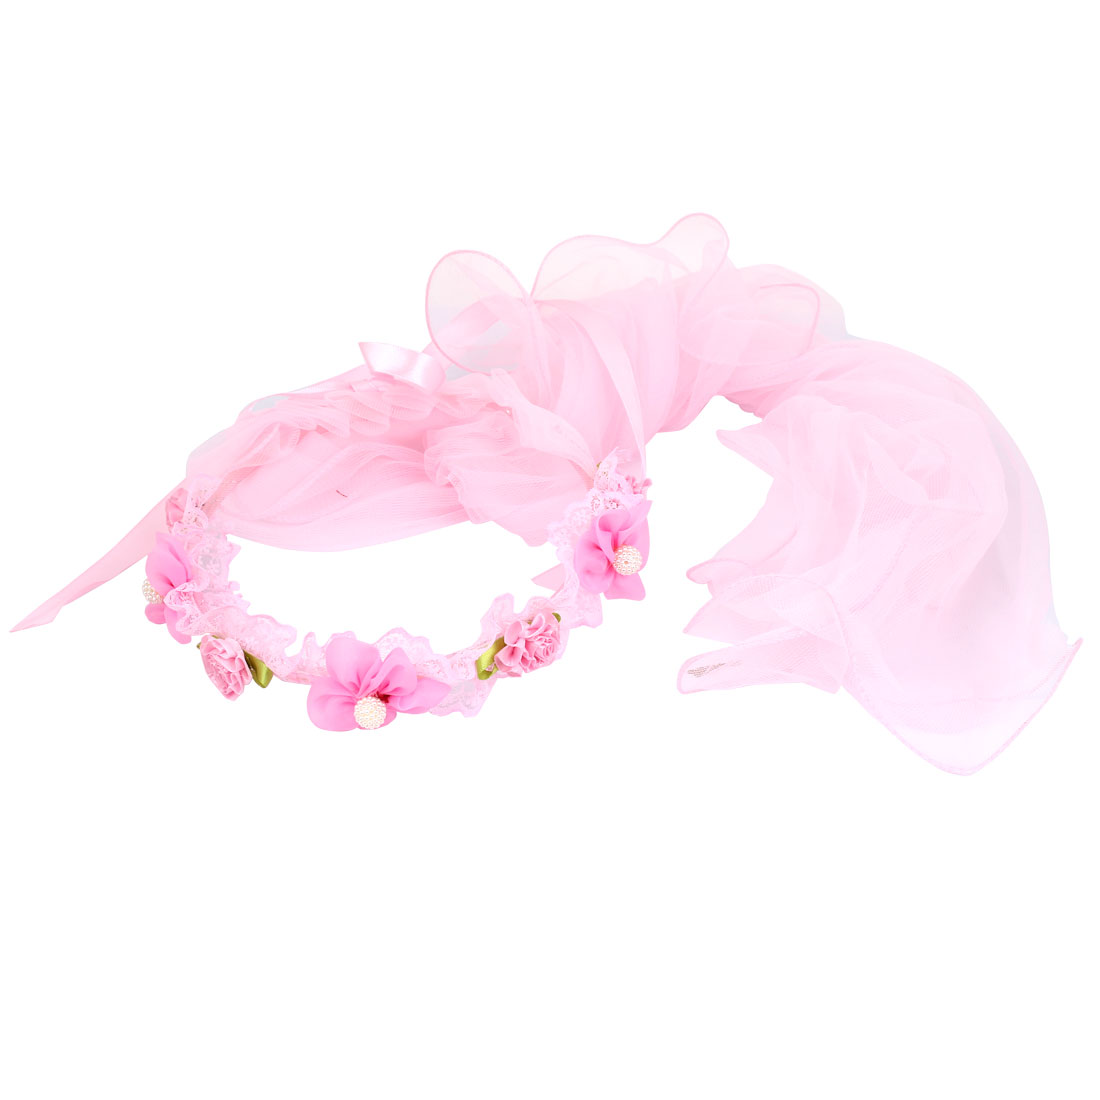 Flower Pattern Women Wedding Festival Hair Band Crown Garland Wreath Veil Pink